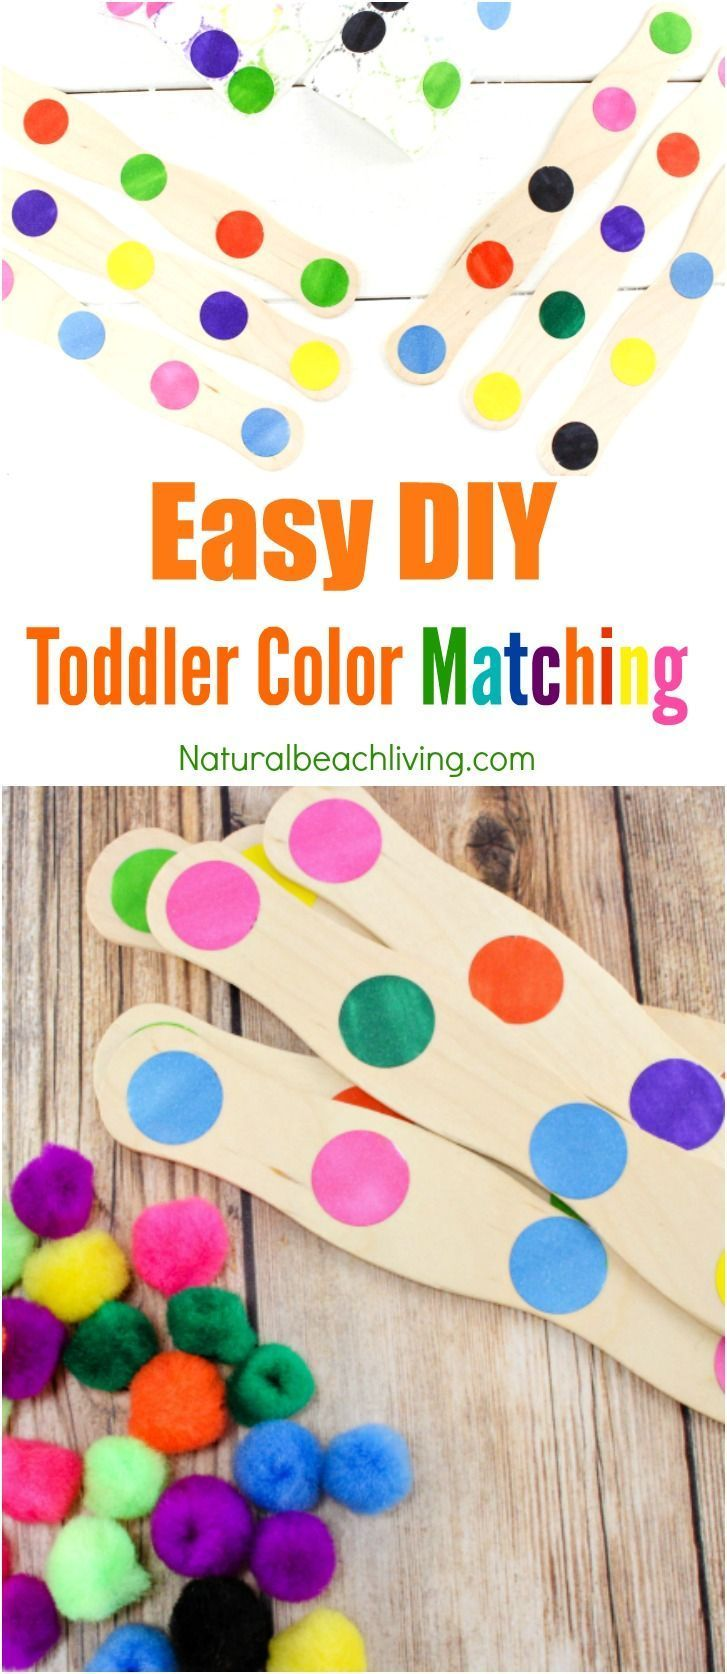 When Is The Right Age For Our Toddlers To Know Colors?